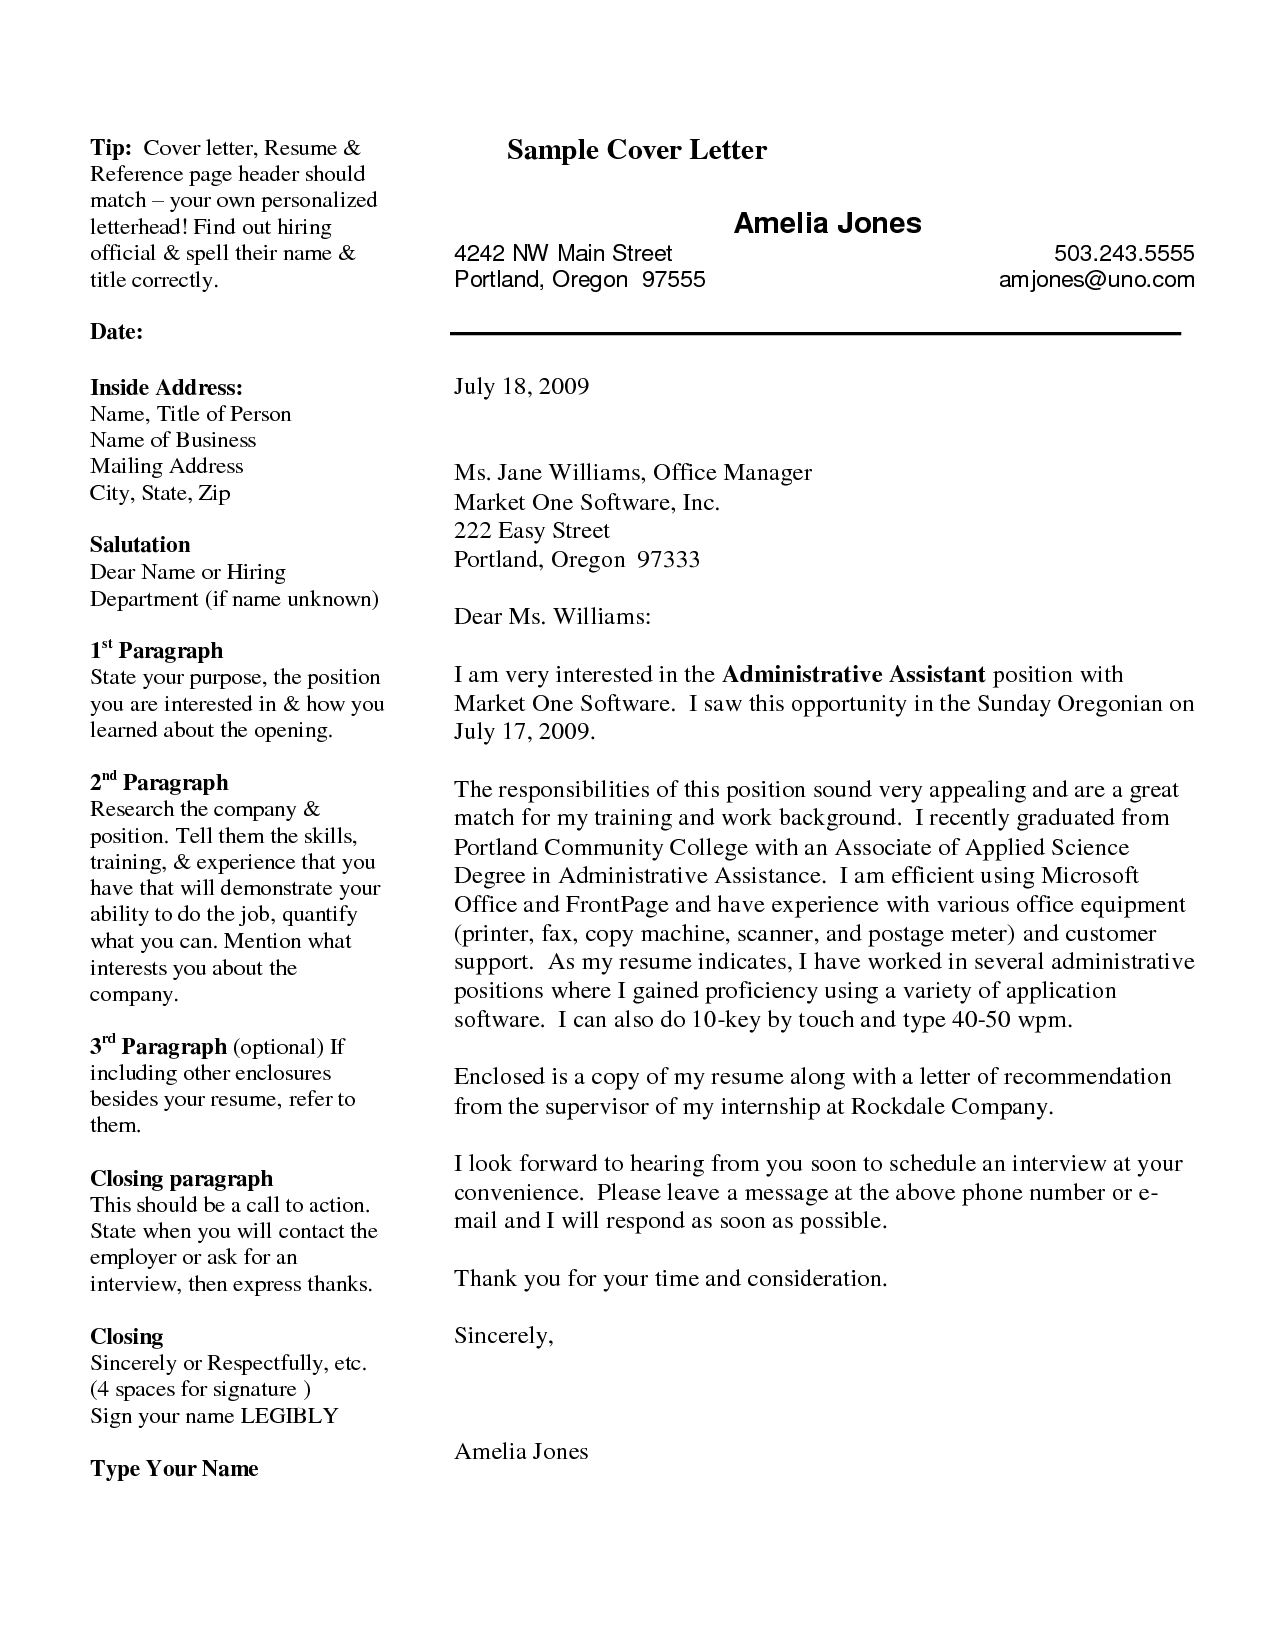 professional resume cover letter samplesprofessional resume cover letter samples professional resume cover letter sampleshow - Free Sample Cover Letter For Resume